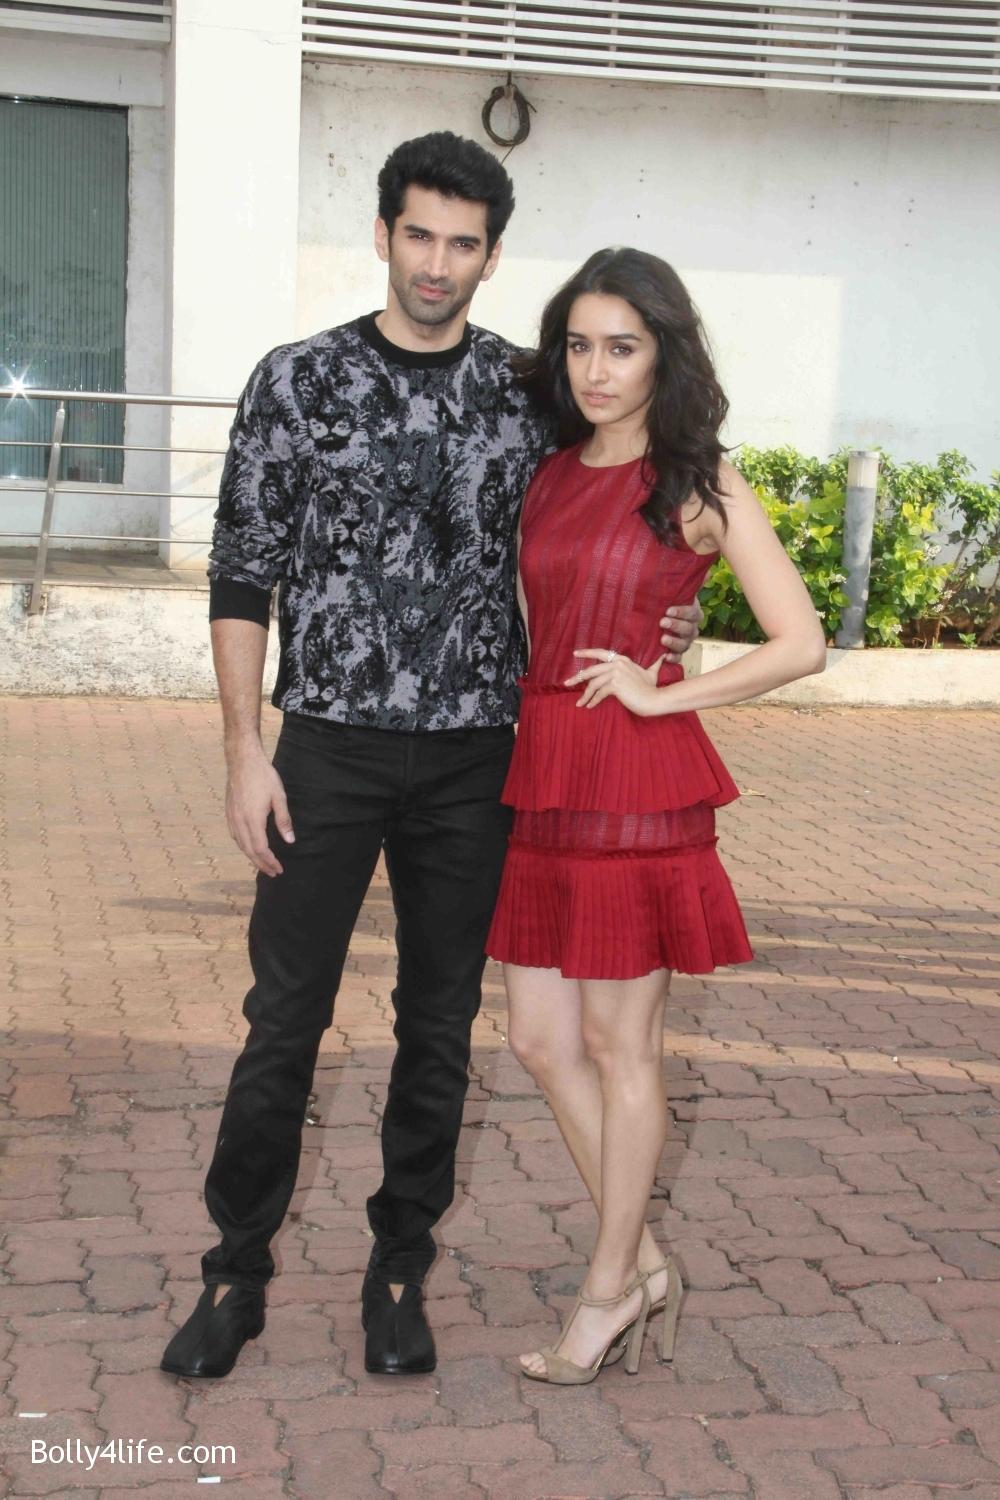 Aditya-Roy-Kapur-and-Shraddha-Kapoor-during-the-promotion-of-film-Ok-Jaanu-on-the-sets-Star-Plus-singing-reality-show-Dil-Hai-Hindustani-17.jpg